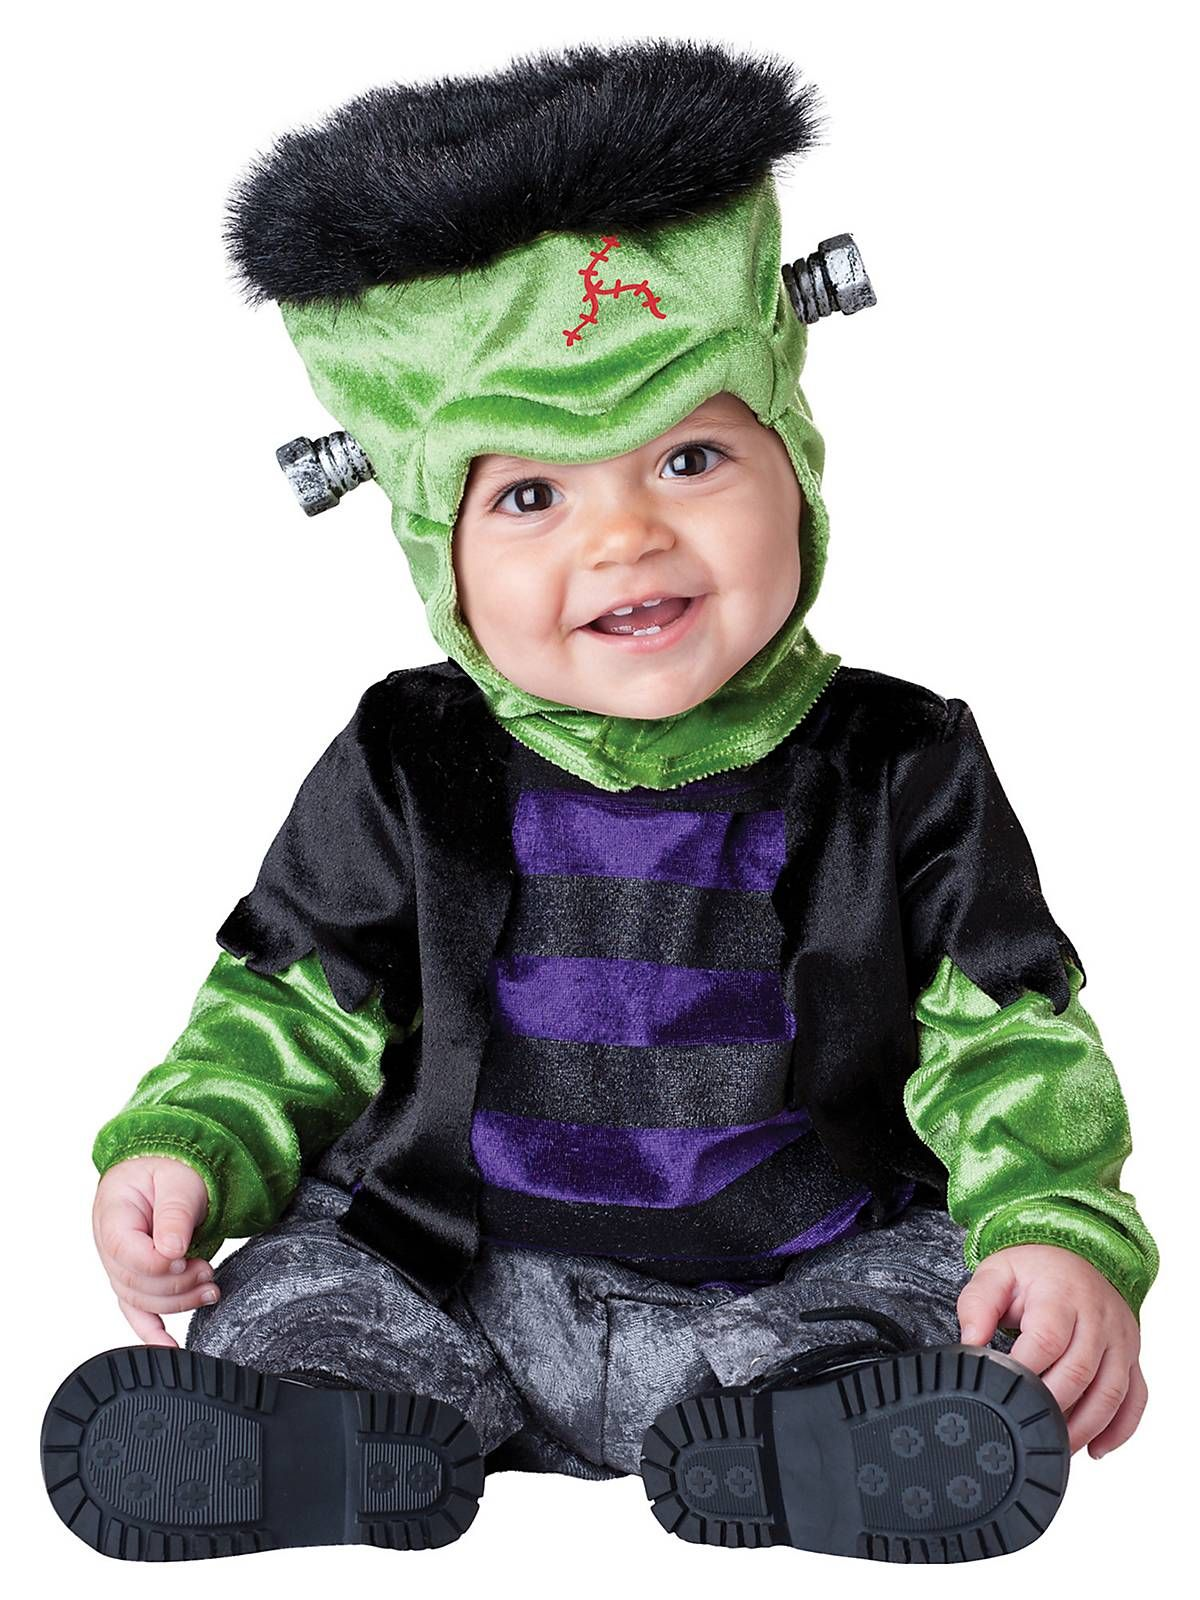 Monster Boo Baby Costume | Cheap Infant u0026 Toddler Halloween Costumes  sc 1 st  Pinterest & Monster Boo Baby Costume | Cheap Infant u0026 Toddler Halloween Costumes ...